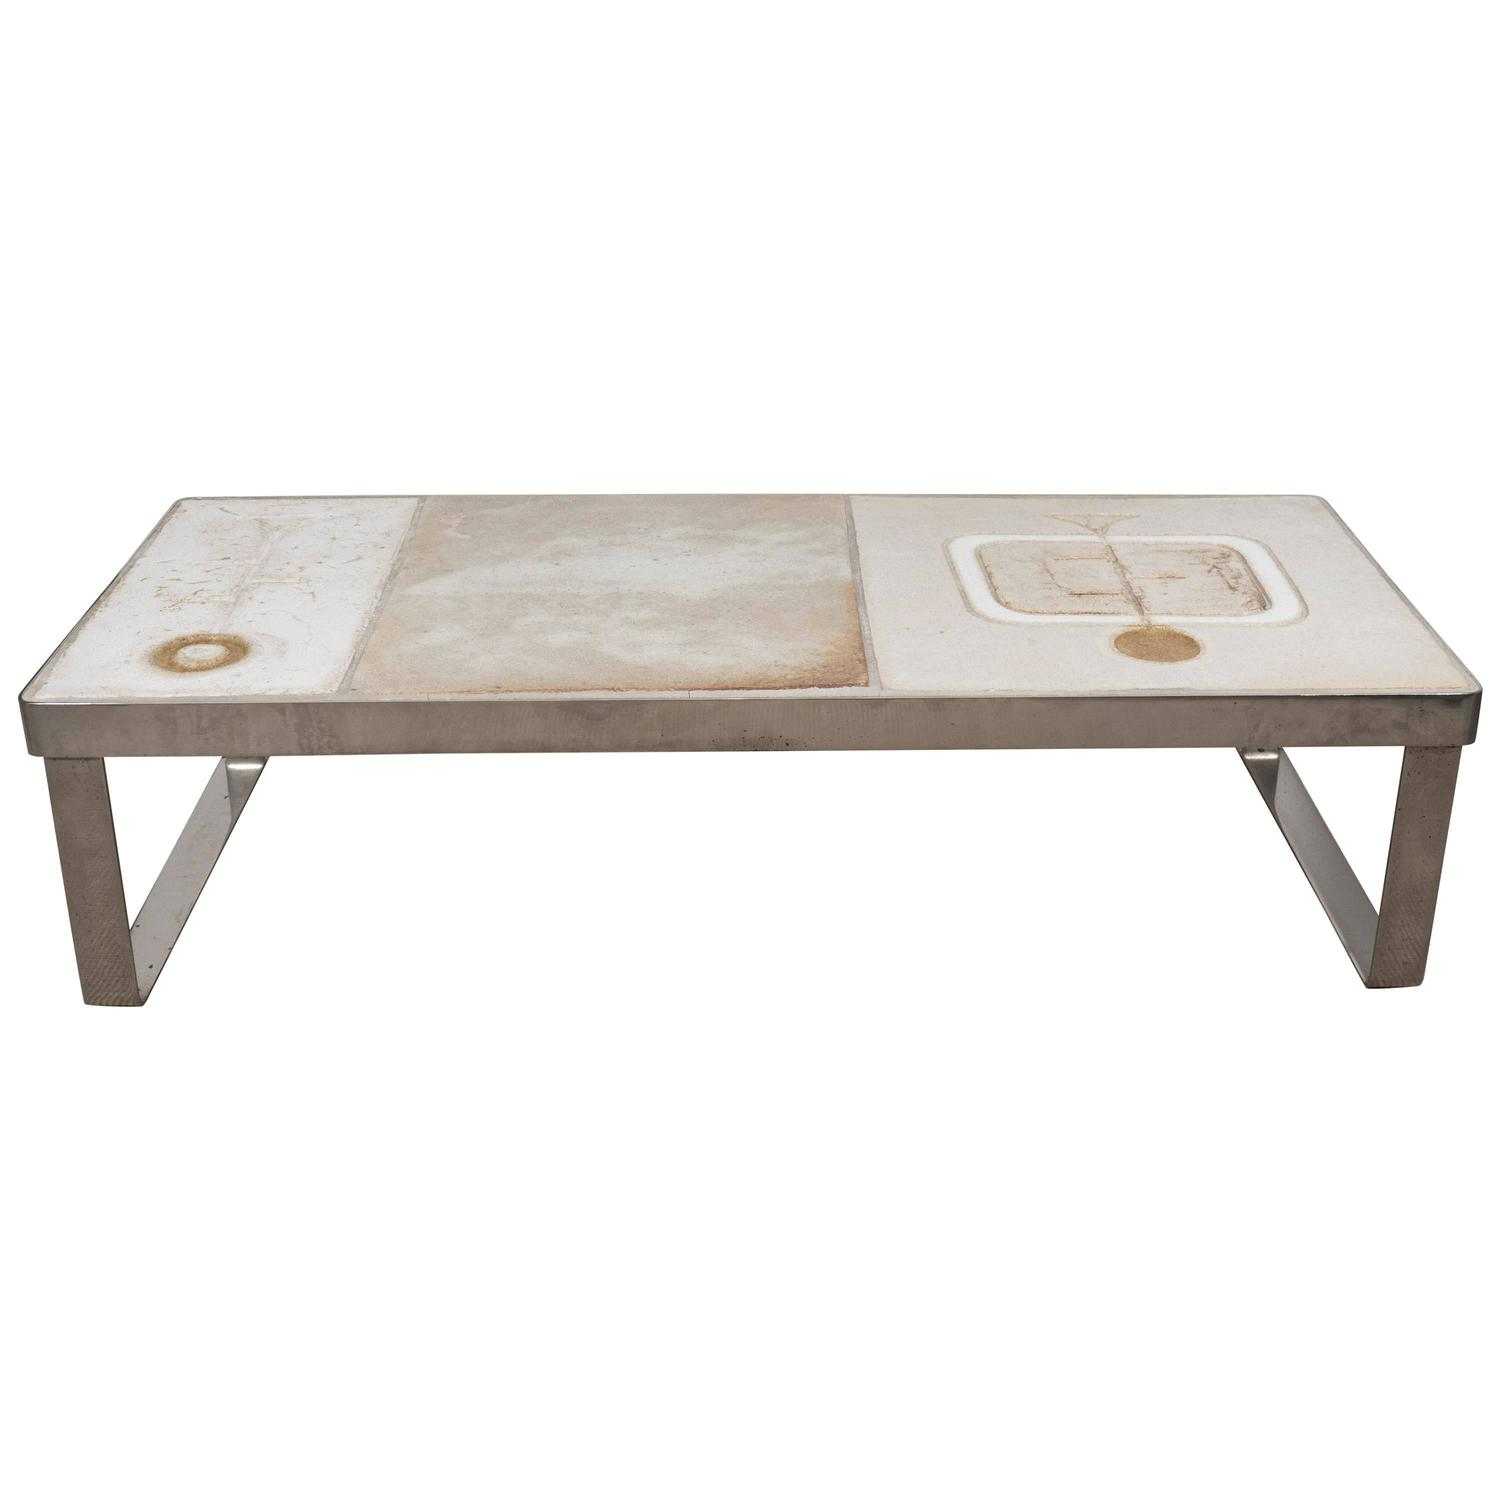 Ceramic Coffee Table Artist Unkown France Circa 1950 At 1stdibs